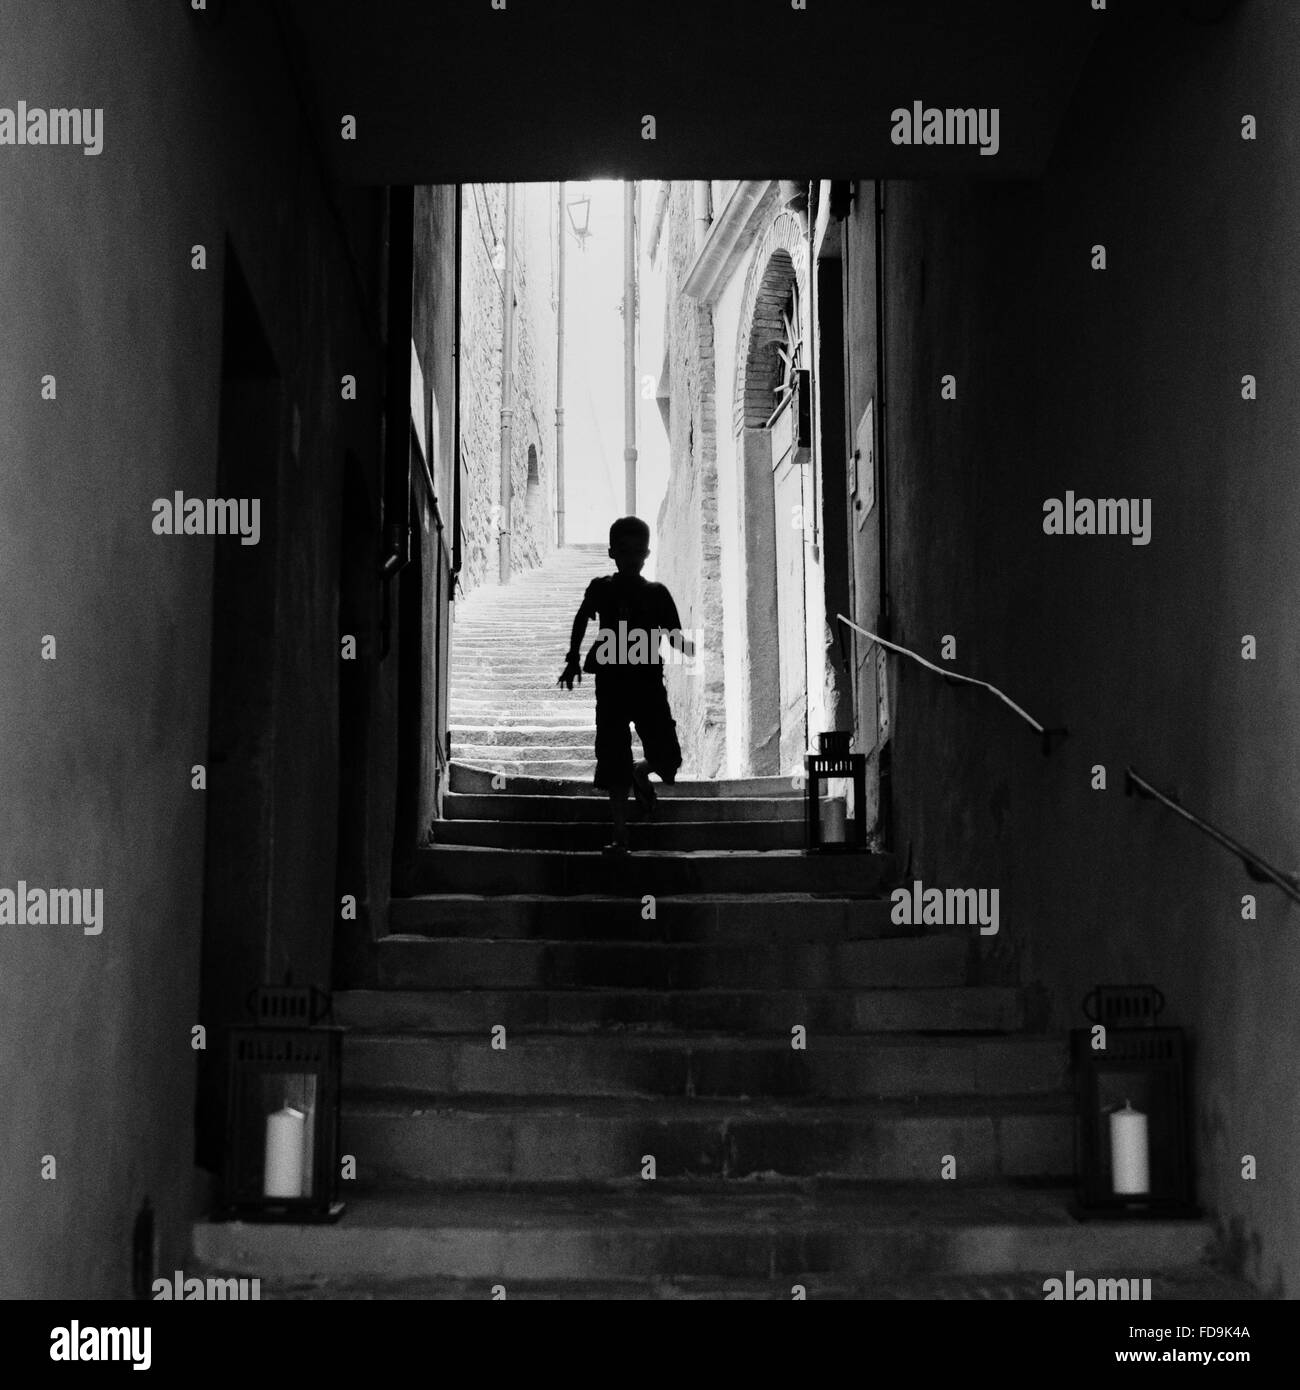 Silhouette Of Boy On Steps Stock Photo